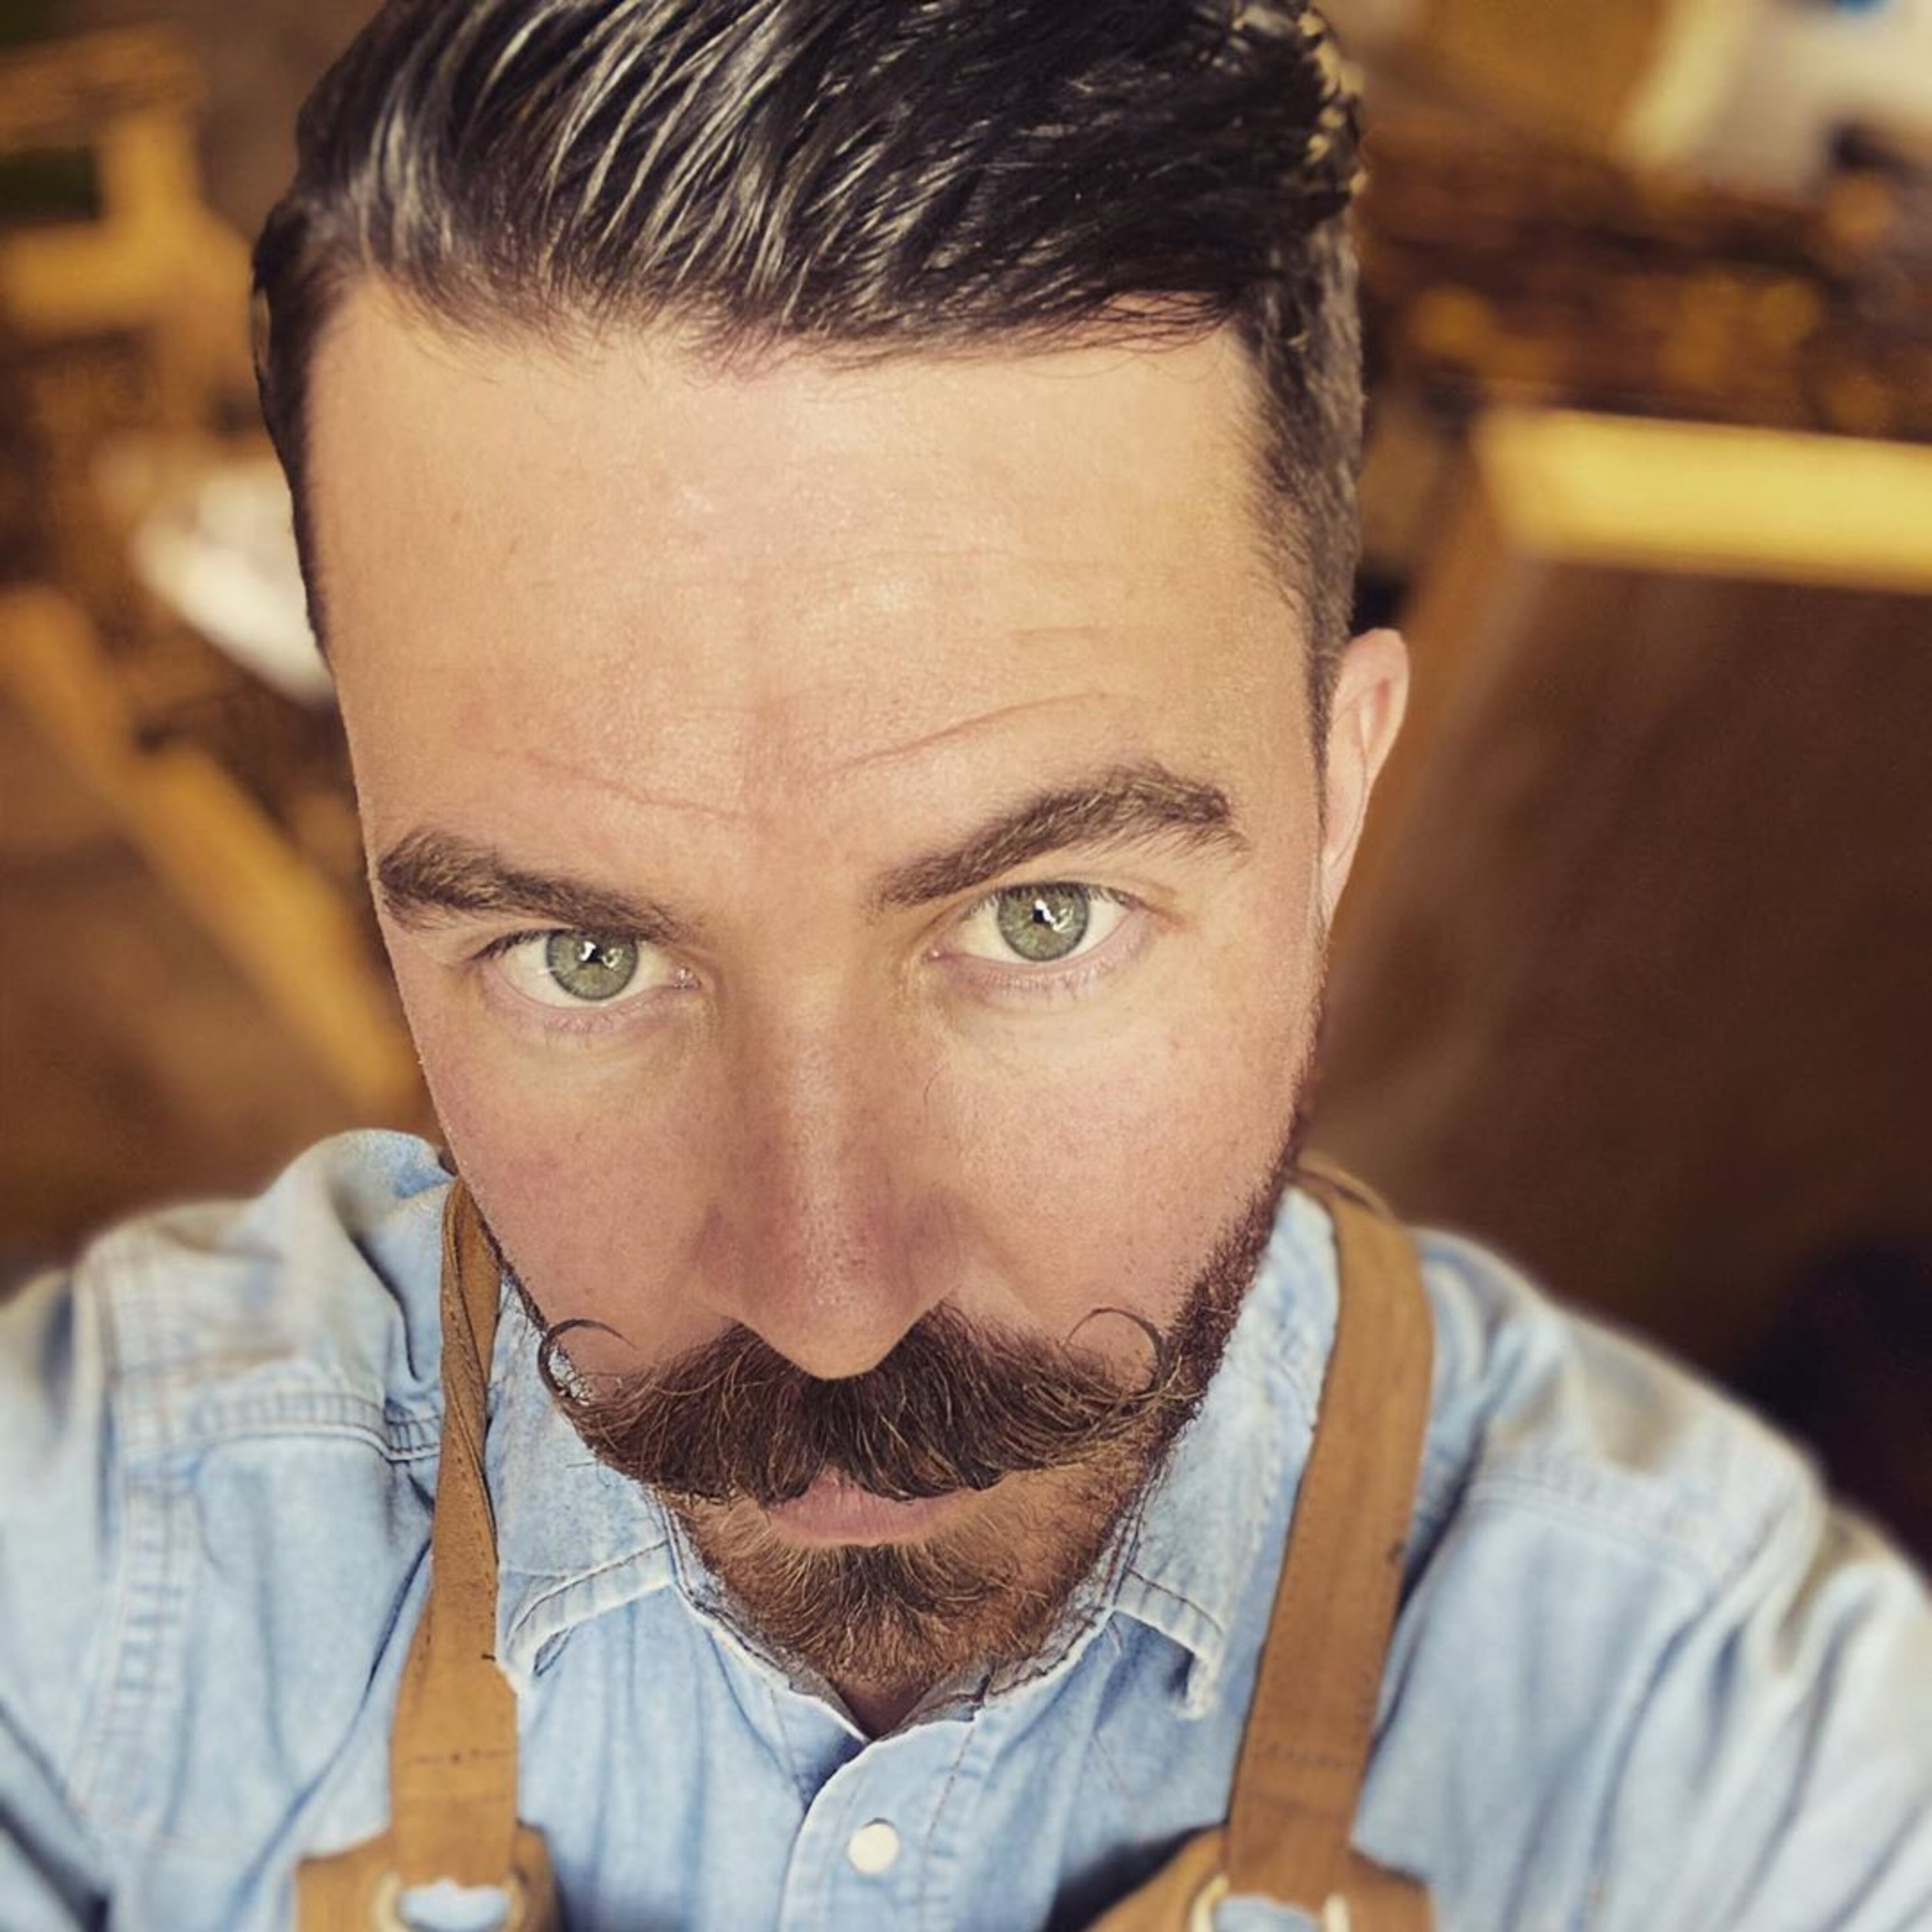 An upside down handlebar mustache for men.